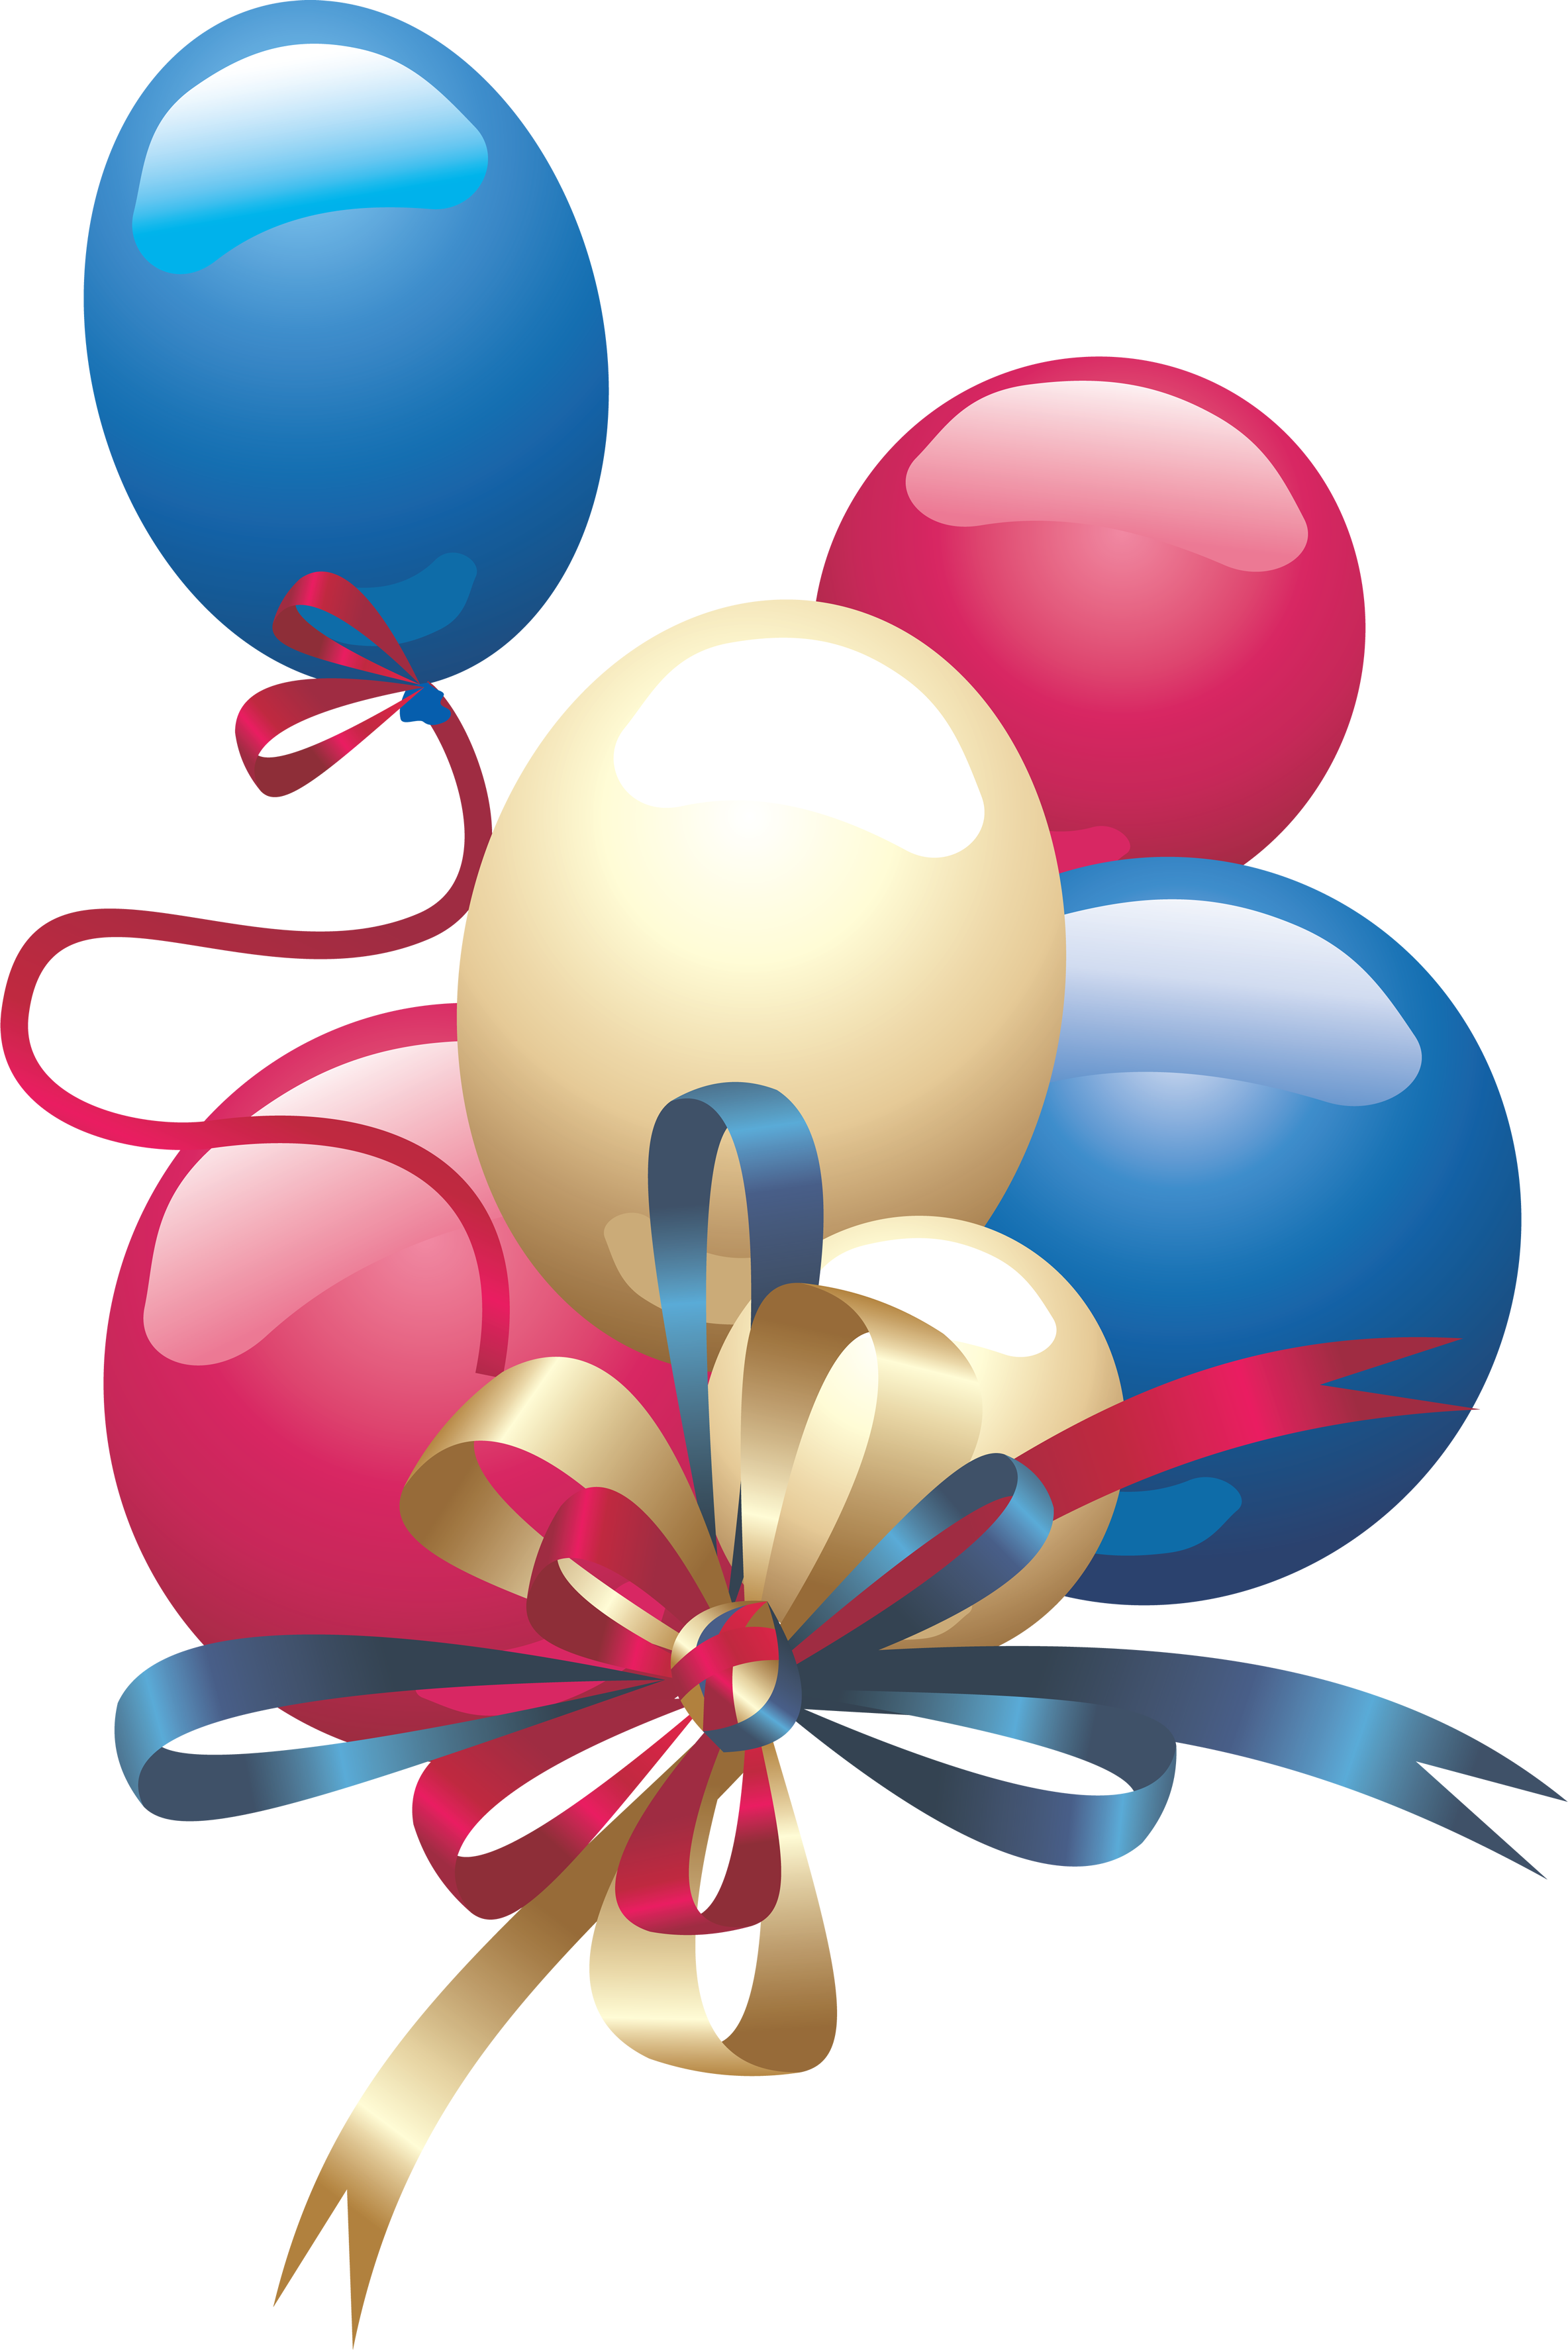 Balloons .png. Balloon png images free